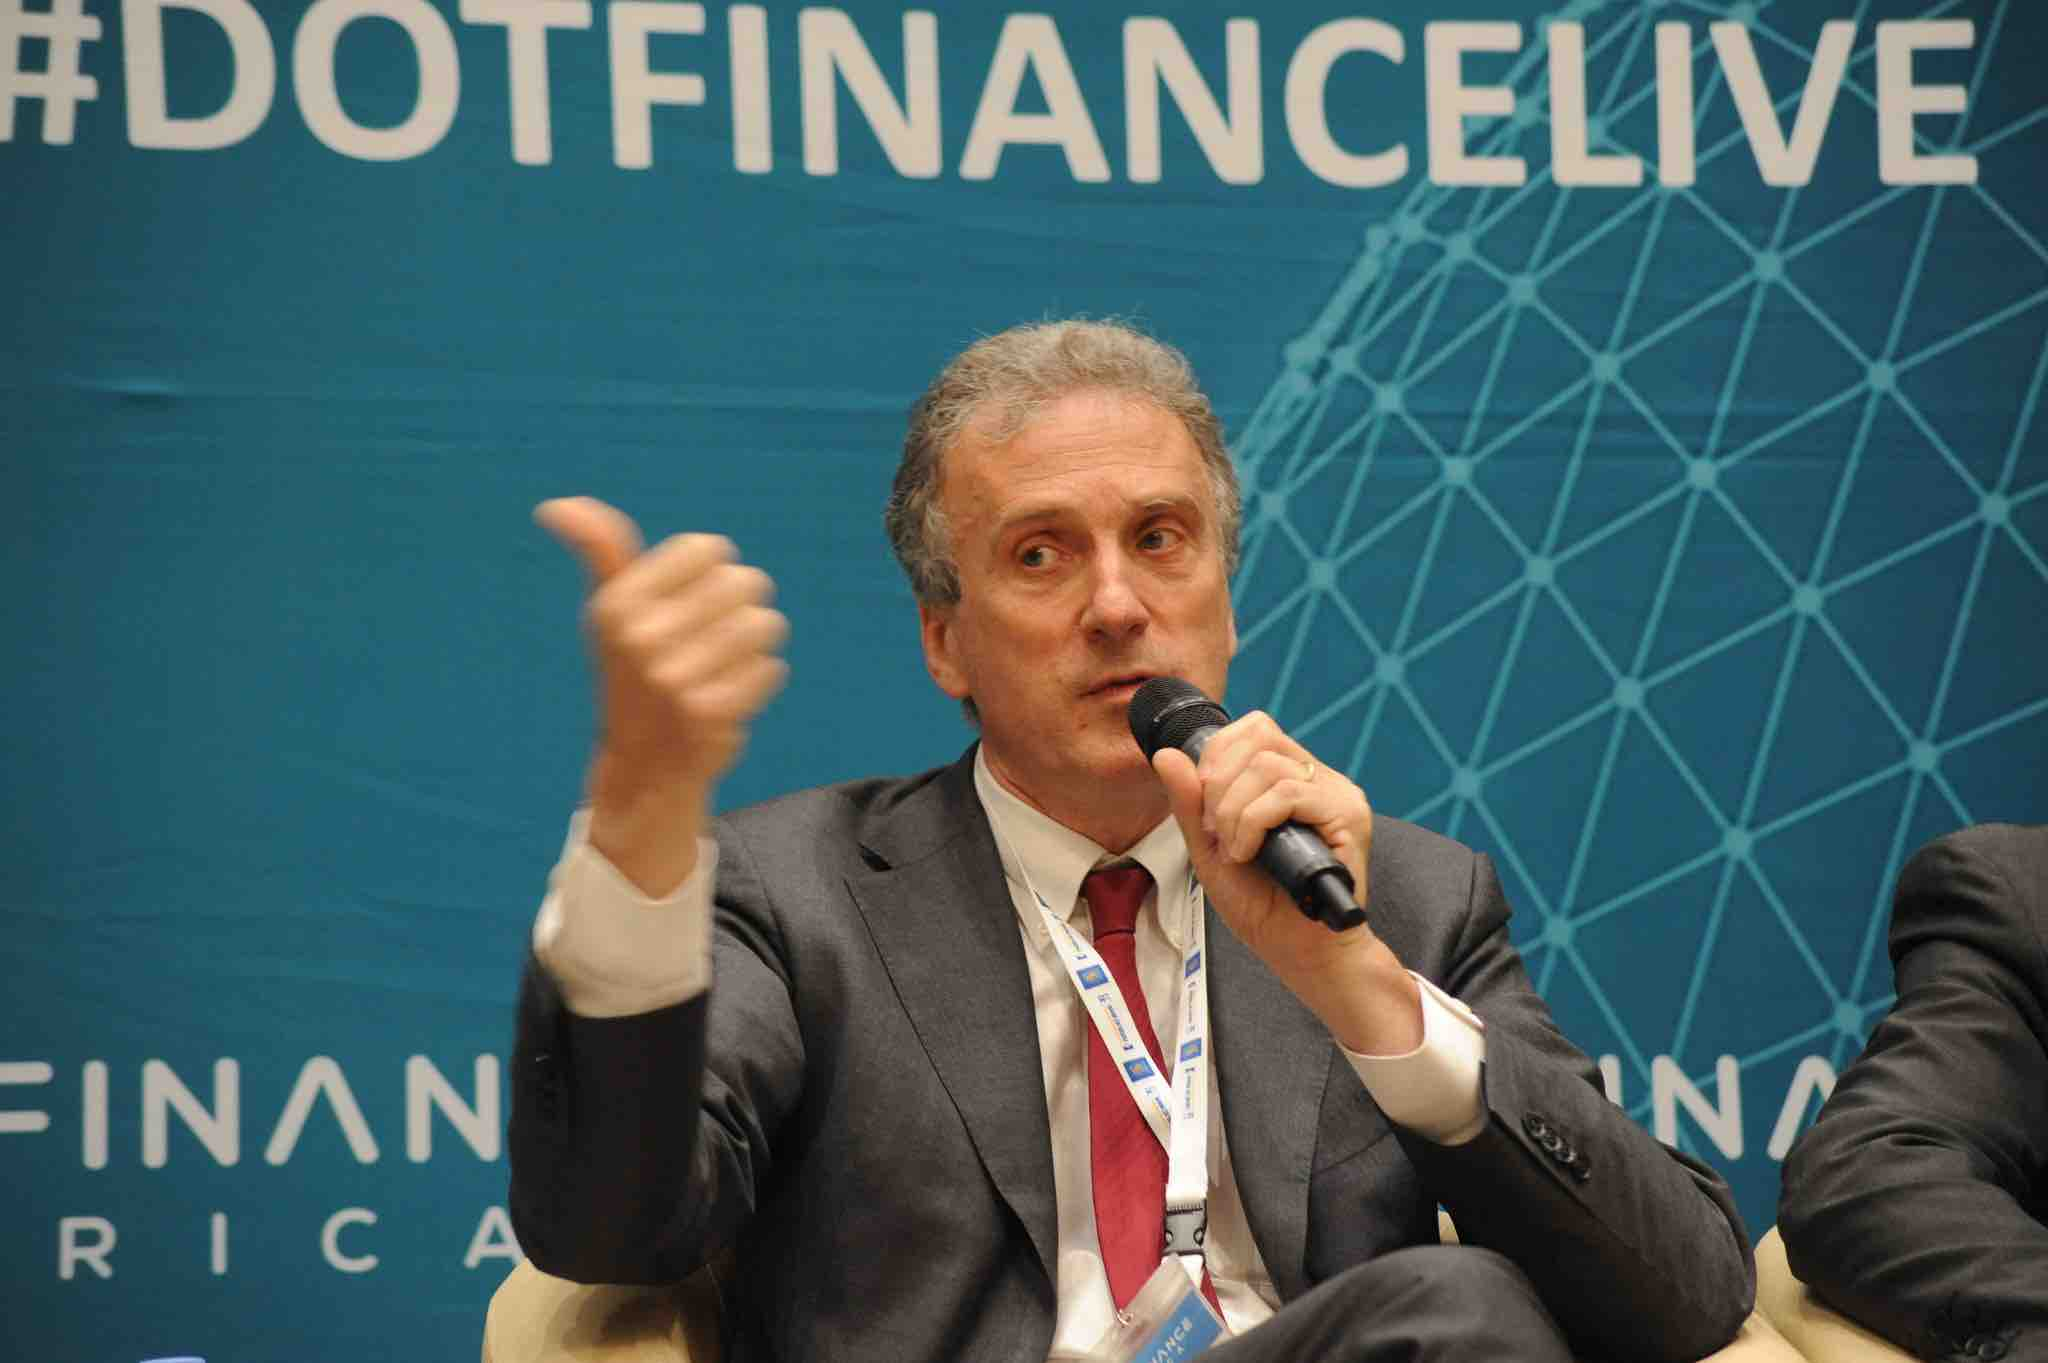 Yves-speaking-dot-finance-2017.jpg